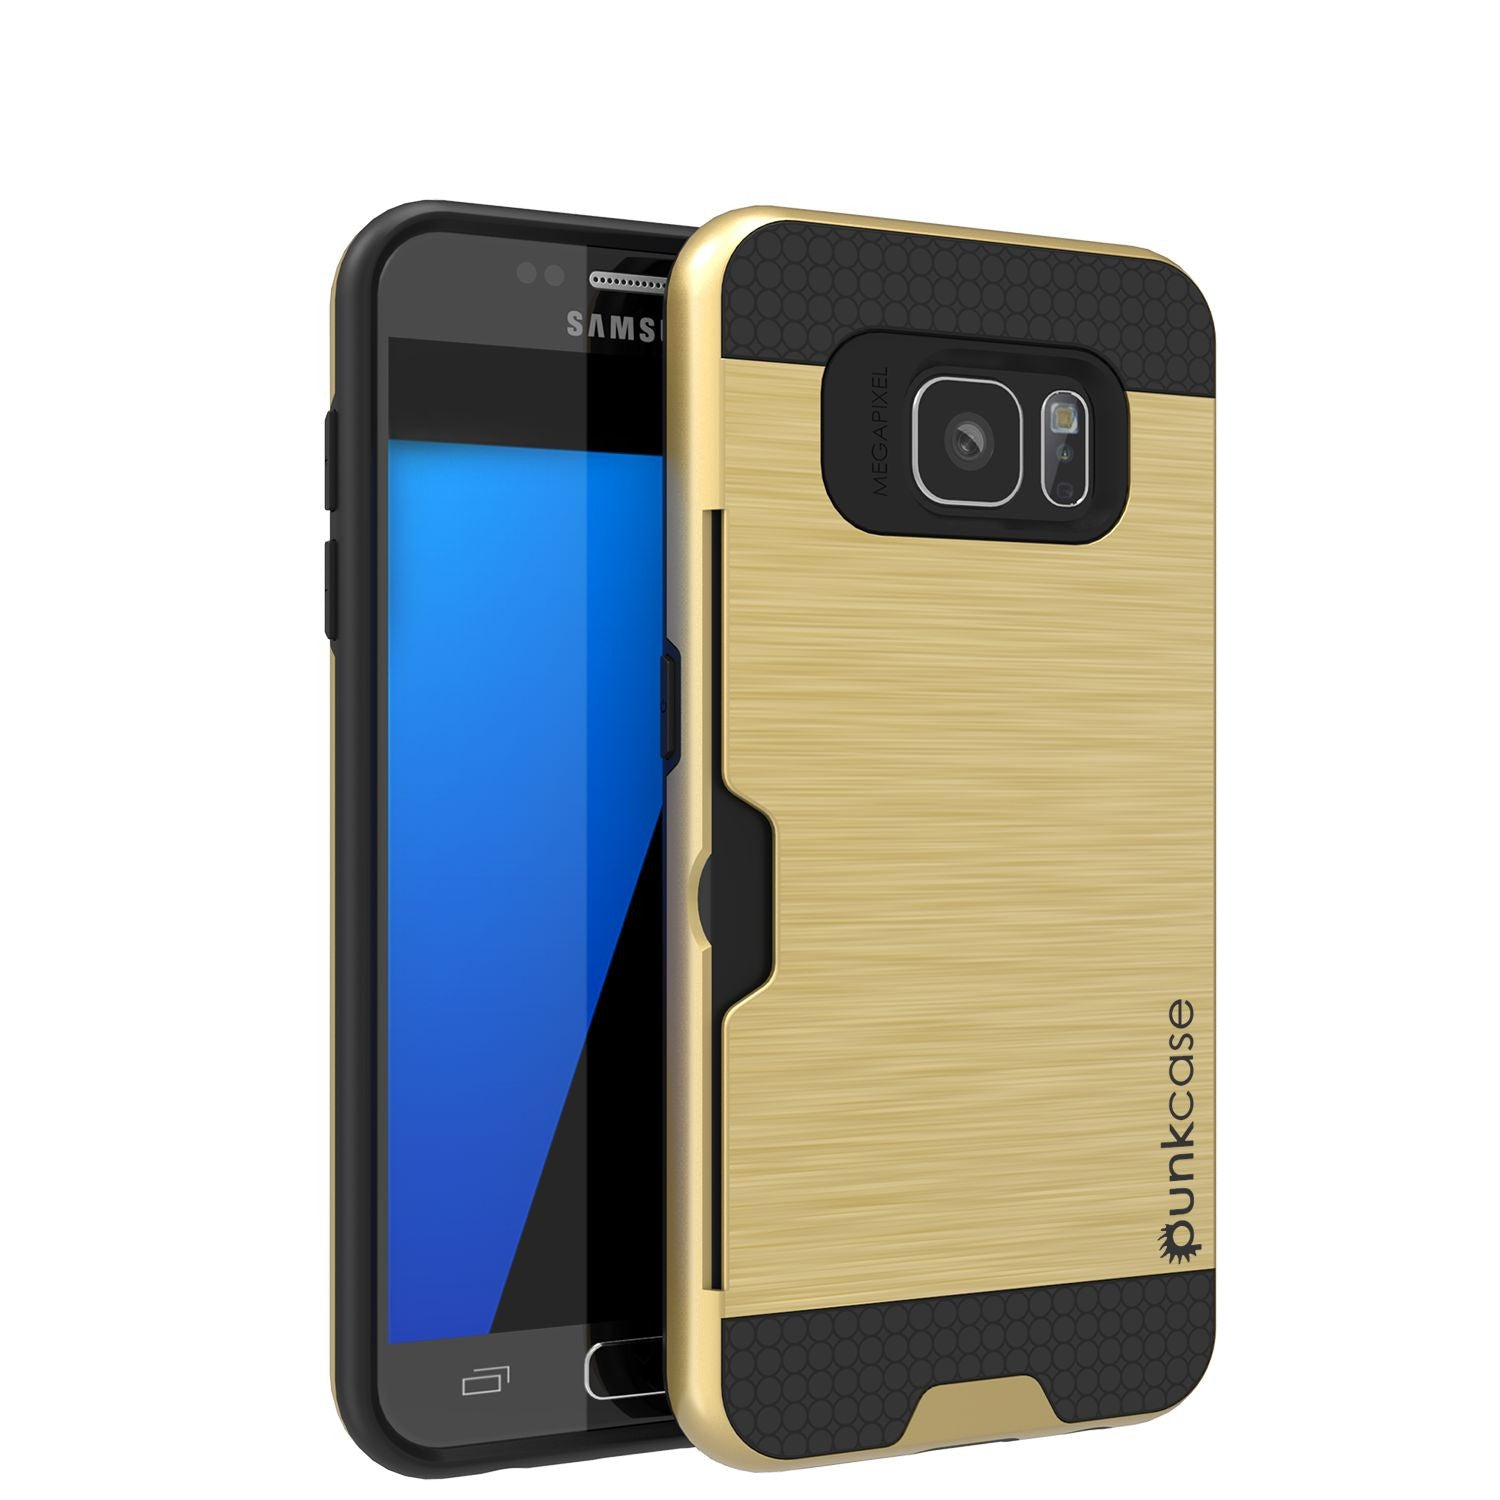 Galaxy s7 Case PunkCase SLOT Gold Series Slim Armor Soft Cover Case w/ Tempered Glass